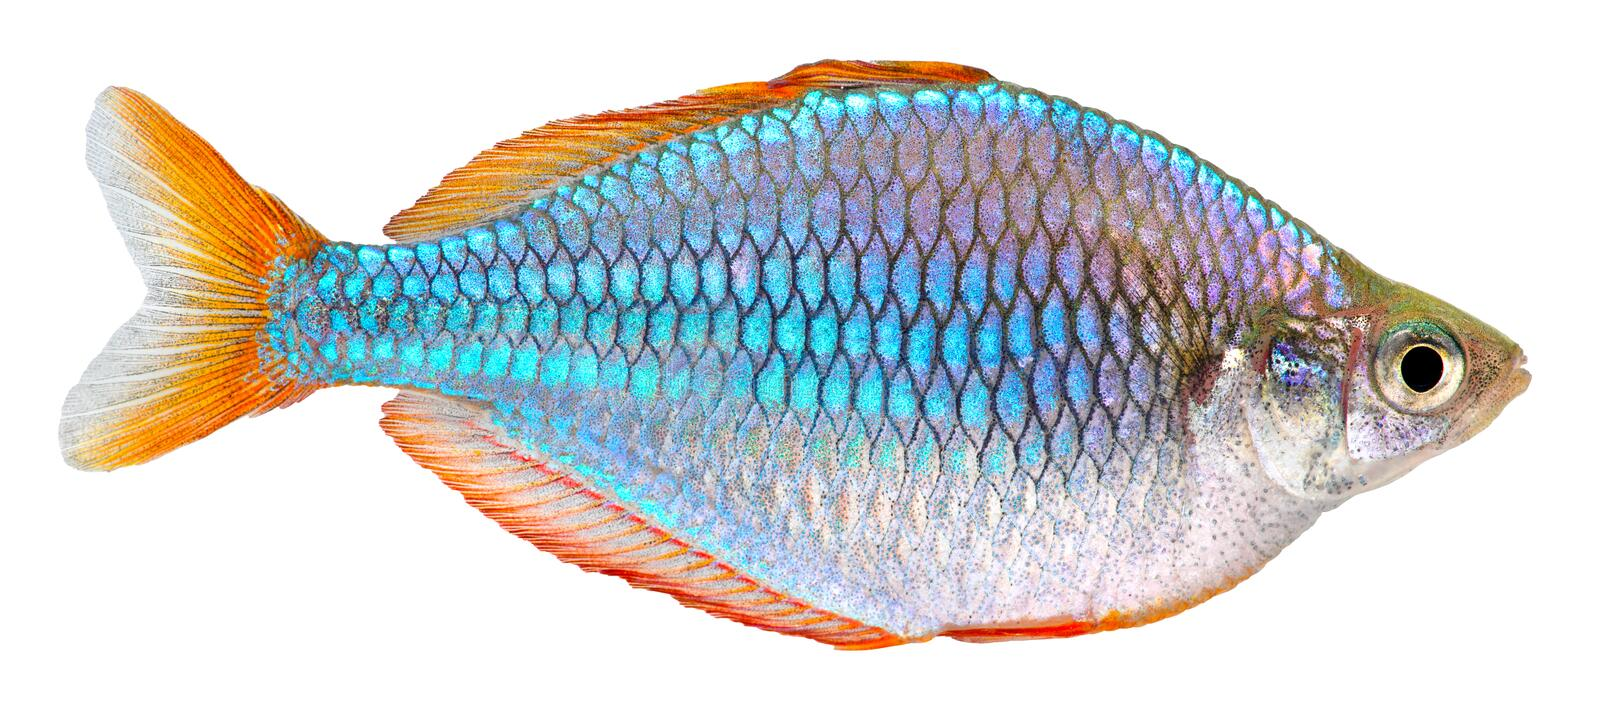 Dwarf neon rainbow fish stock photo image of orange for Dwarf rainbow fish